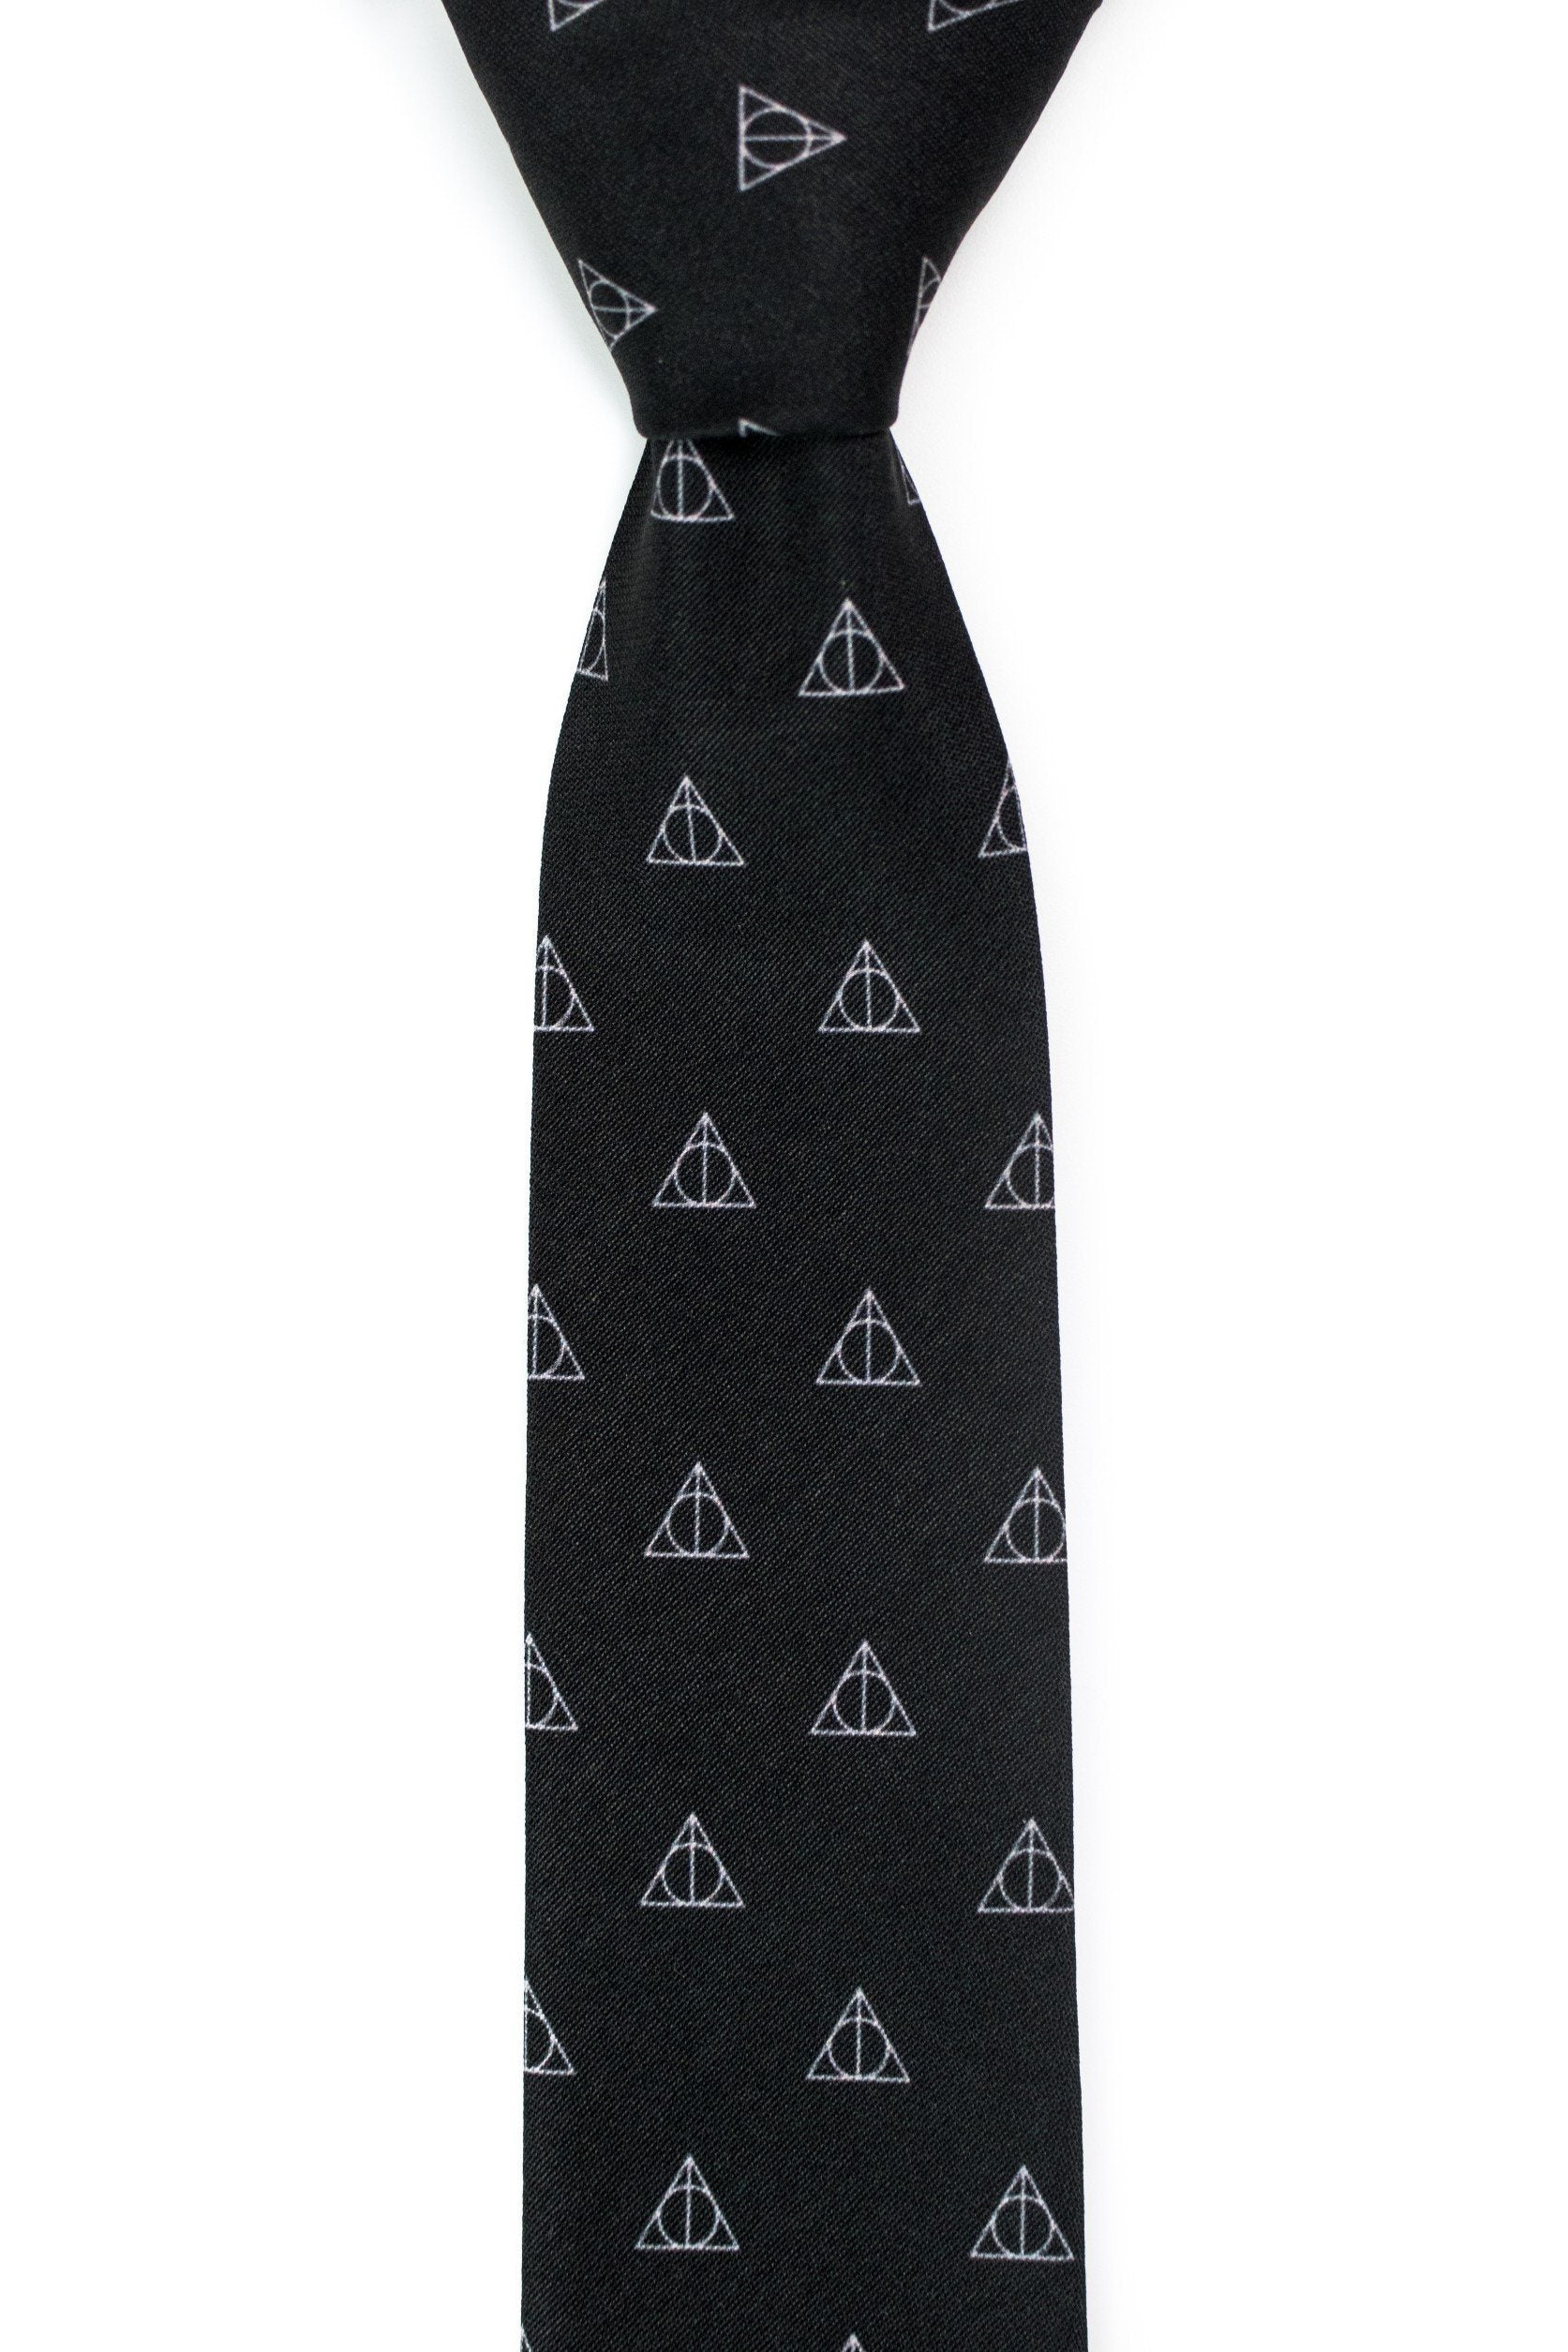 Deathly Hallows - Tough Tie